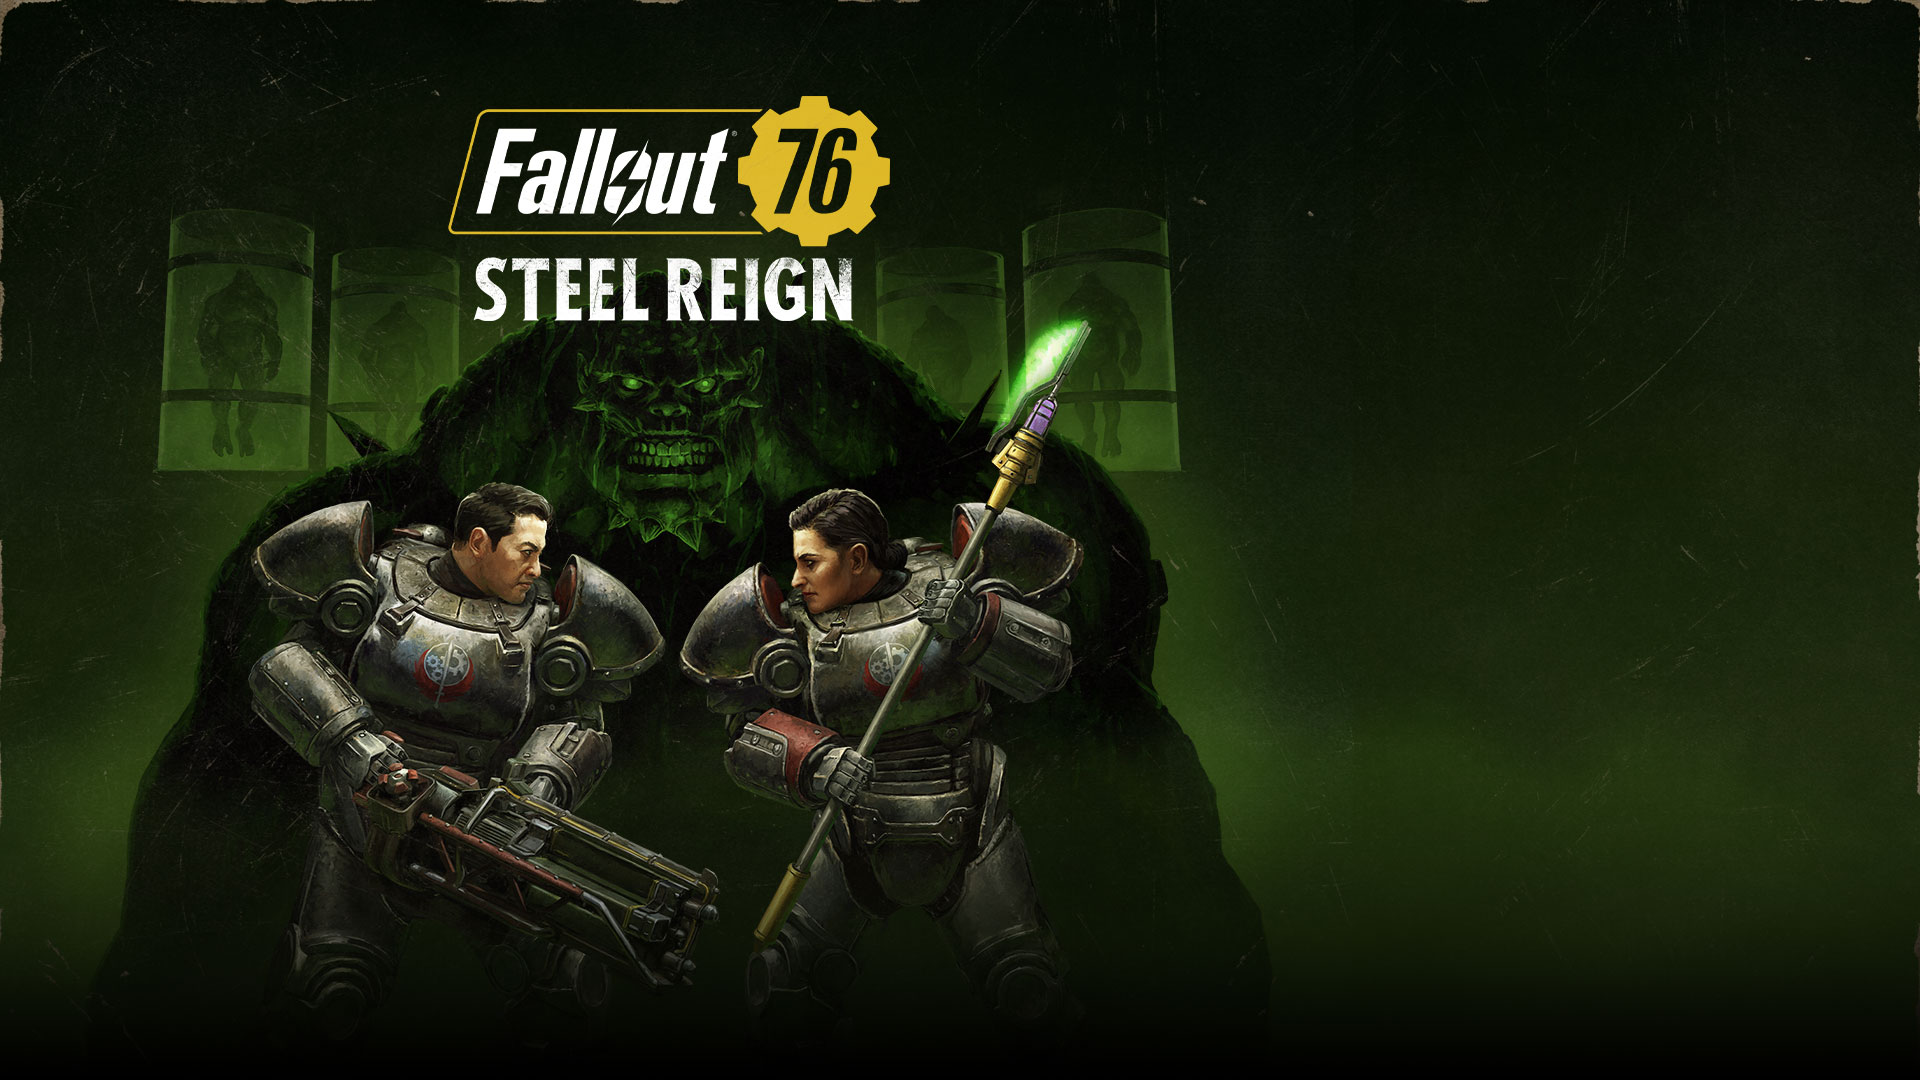 Fallout 76 Steel Reign, two characters in Power Armor face off with a big monster in the background.